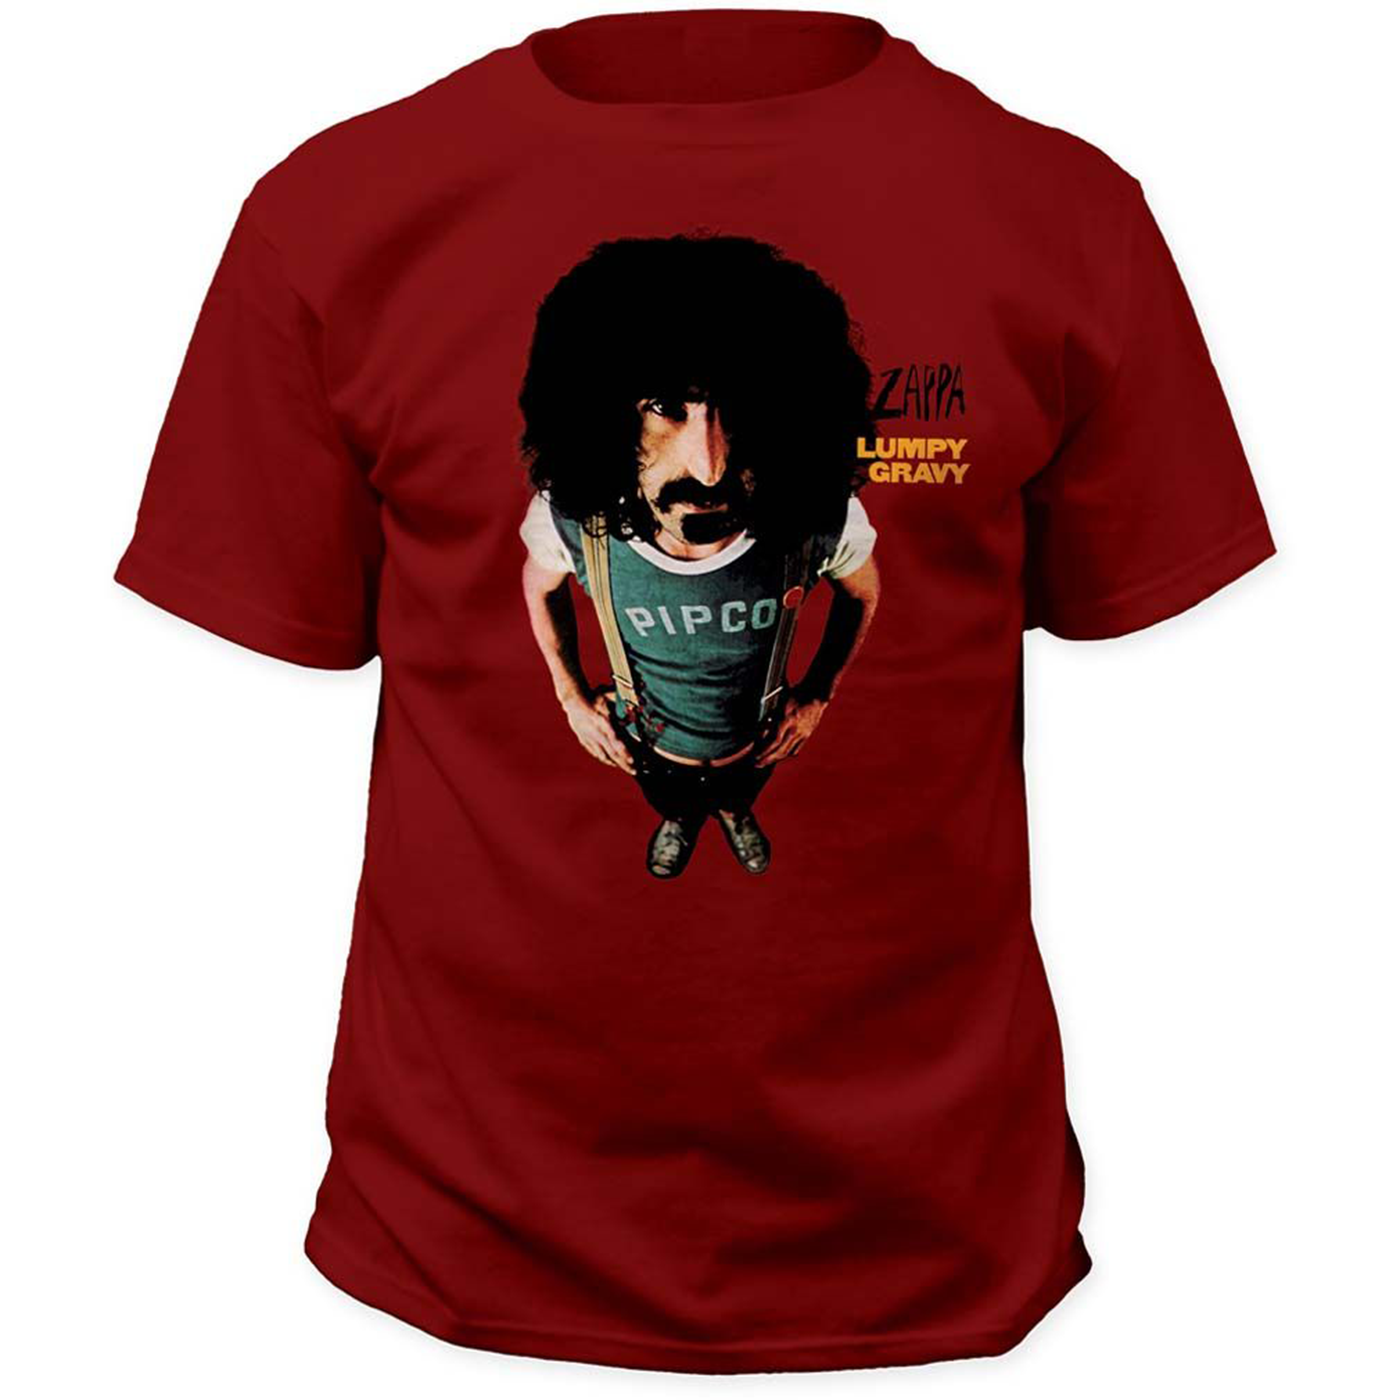 Frank Zappa Lumpy Gravy 1967 Album Cover T Shirt Sleeve Men T Shirt Fashion 100% Cotton Short Sleeves Tee Shirts Top Tee image